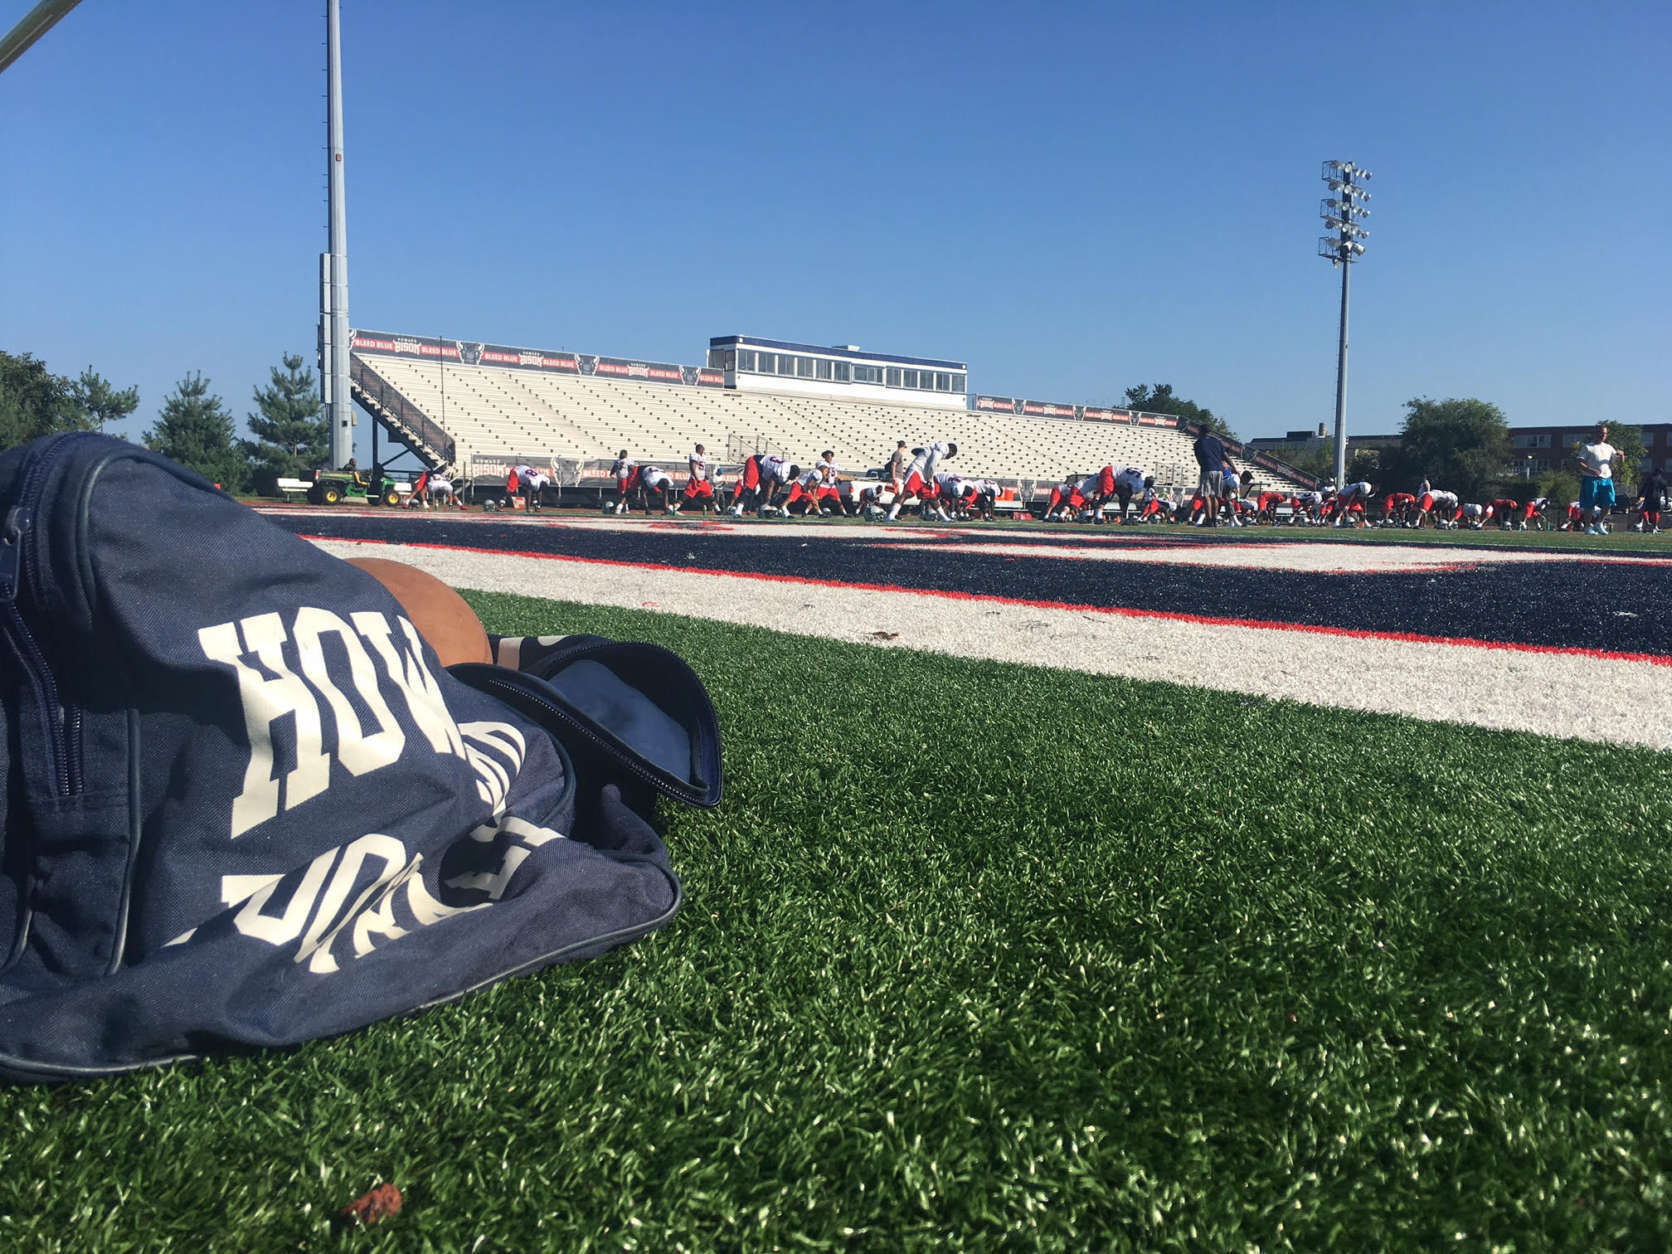 Howard football finally returns to D.C. for its home opener Saturday vs. Bethune-Cookman. (WTOP/Noah Frank)